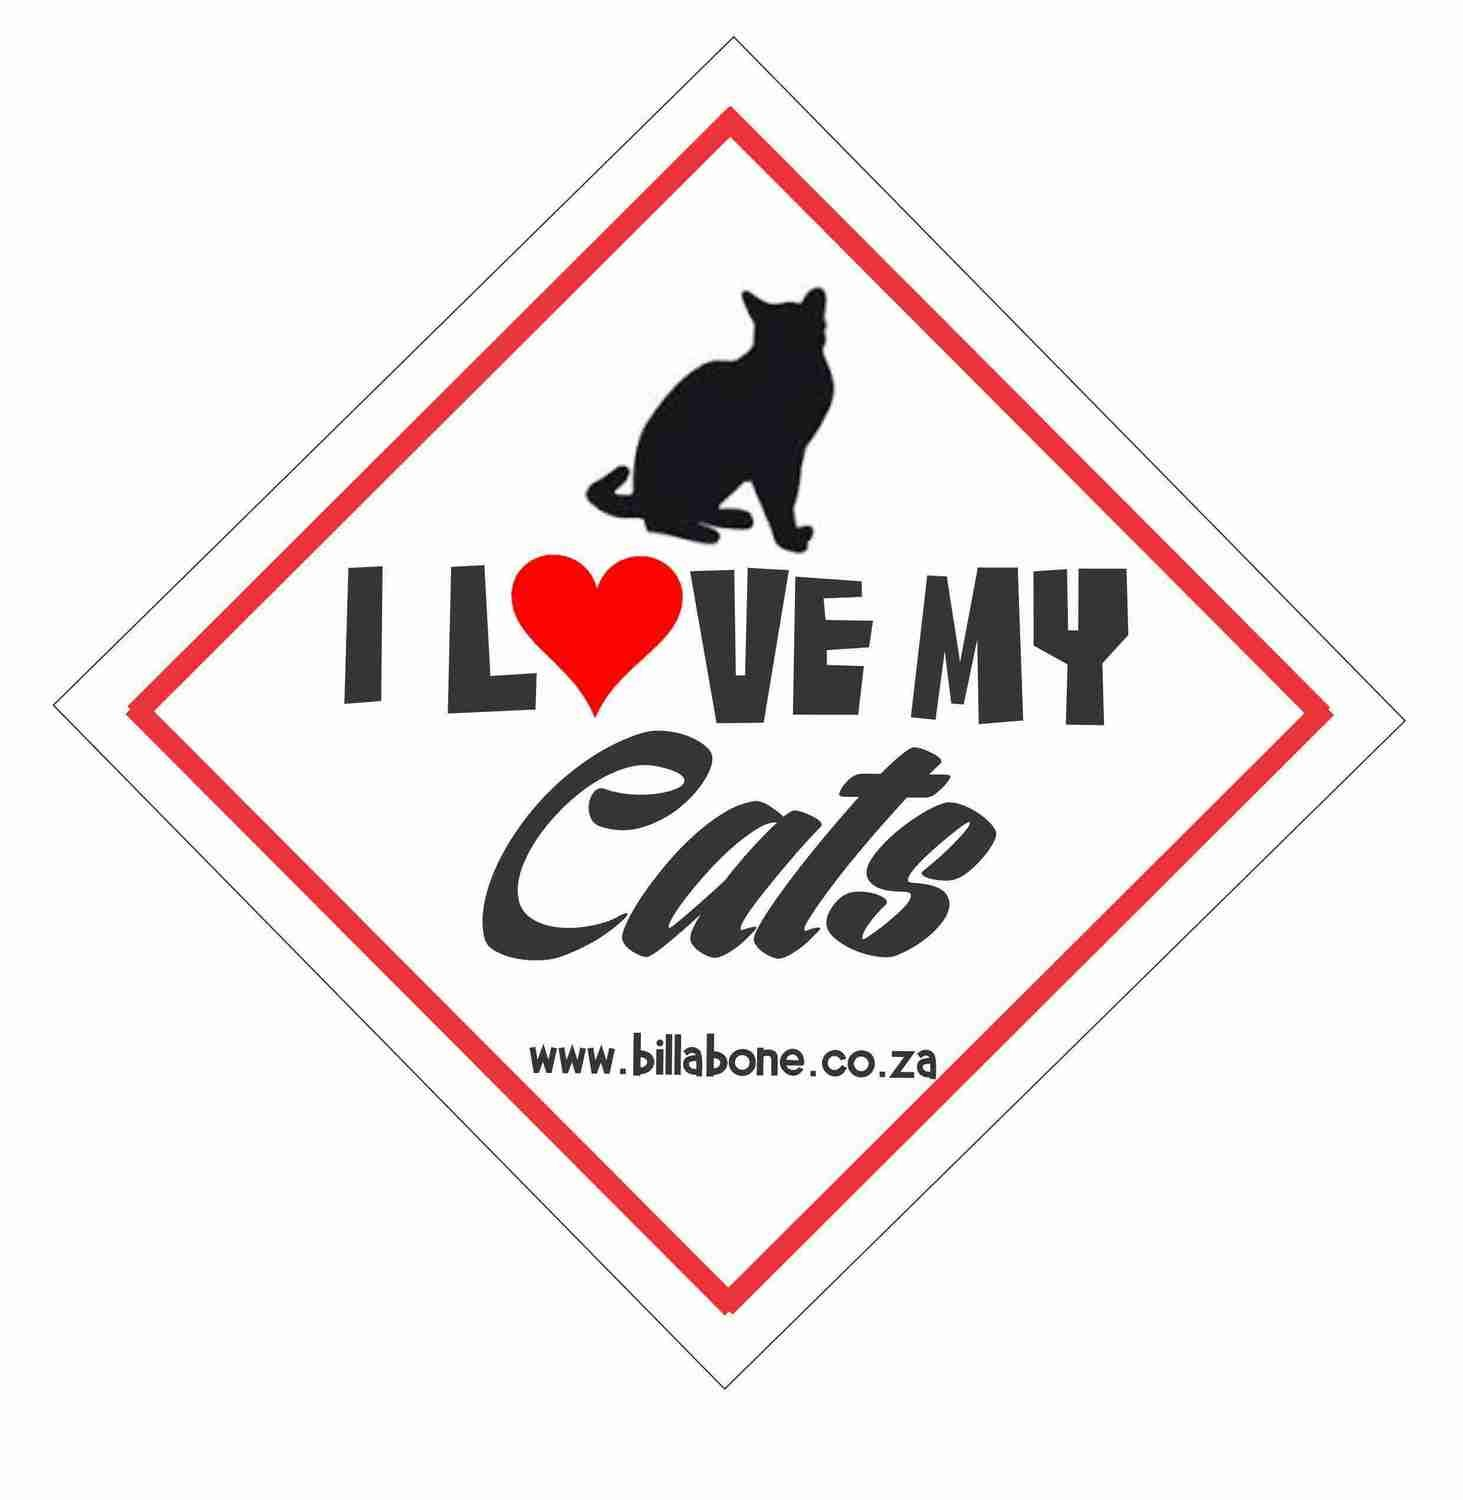 I Love My Cats Car Sign or Sticker